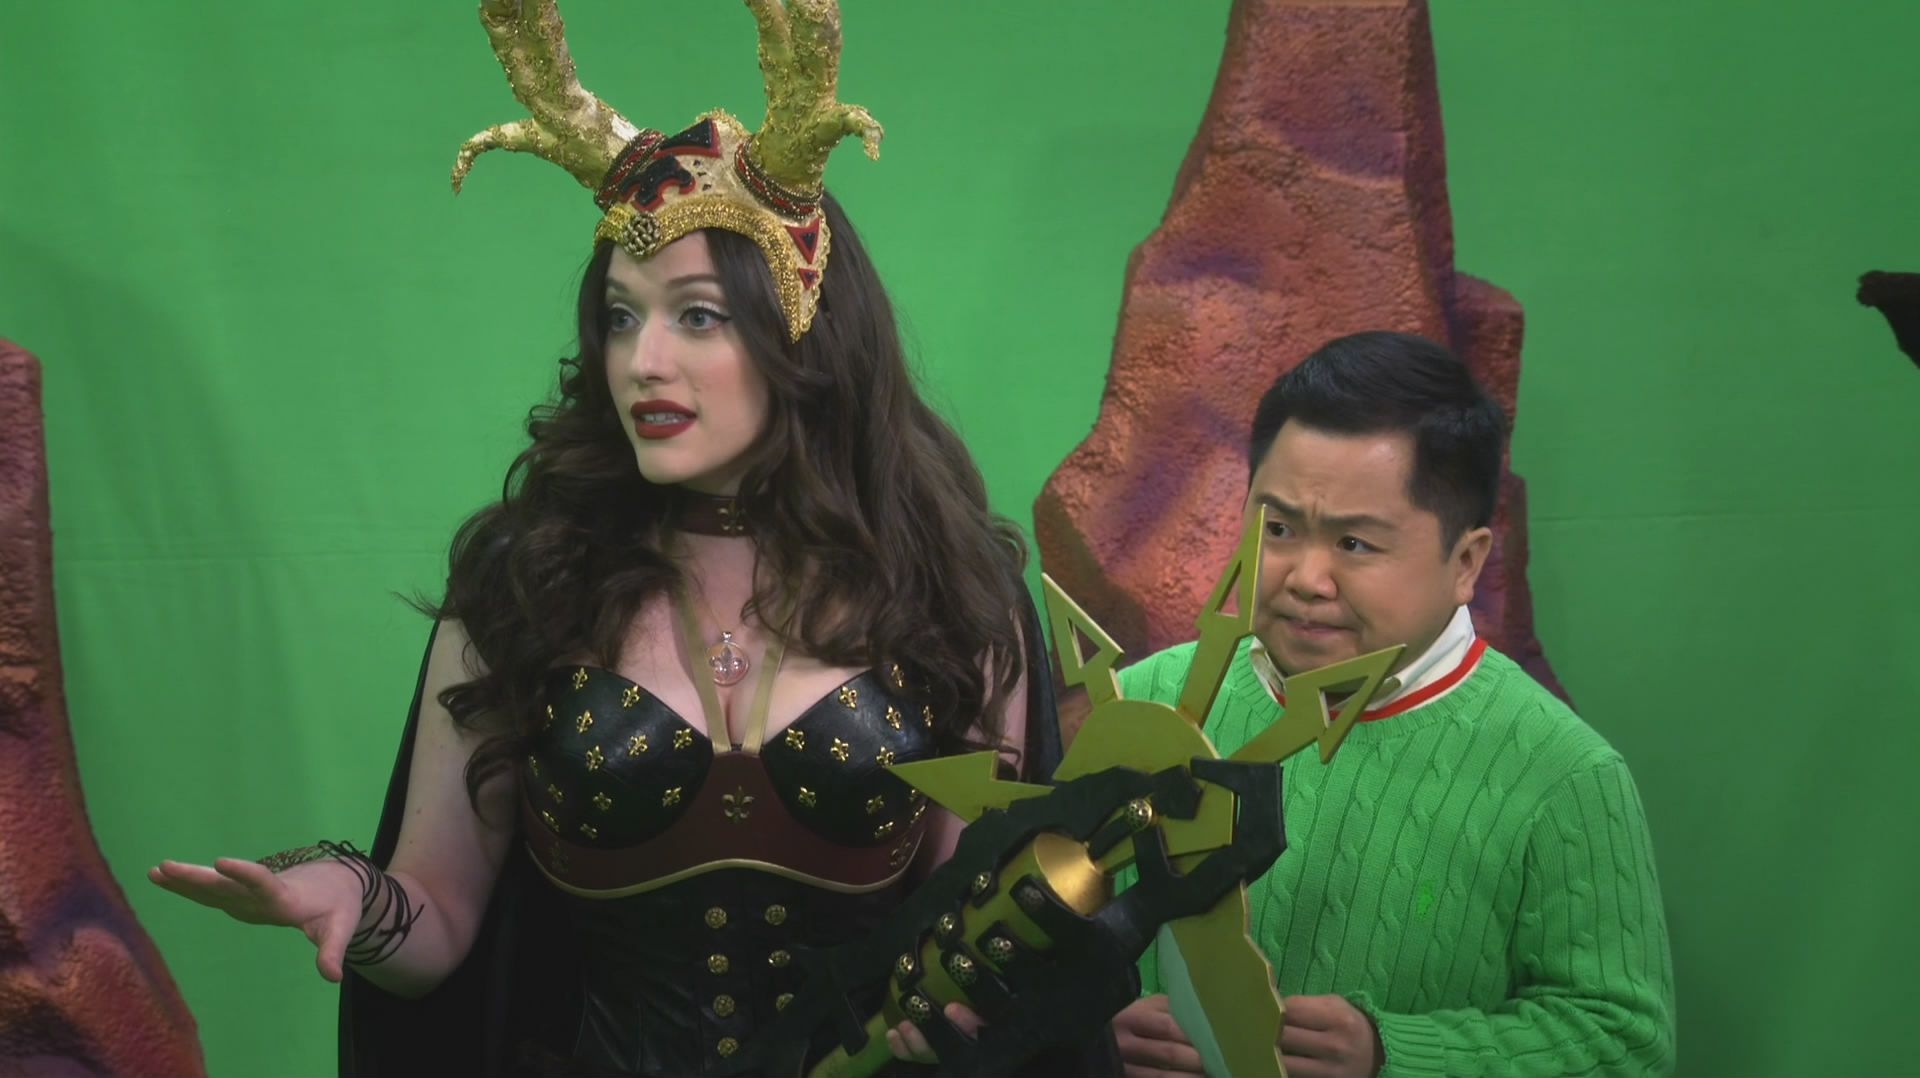 Kat Dennings - 2 Broke Girls S05 E11 And the Booth Babes